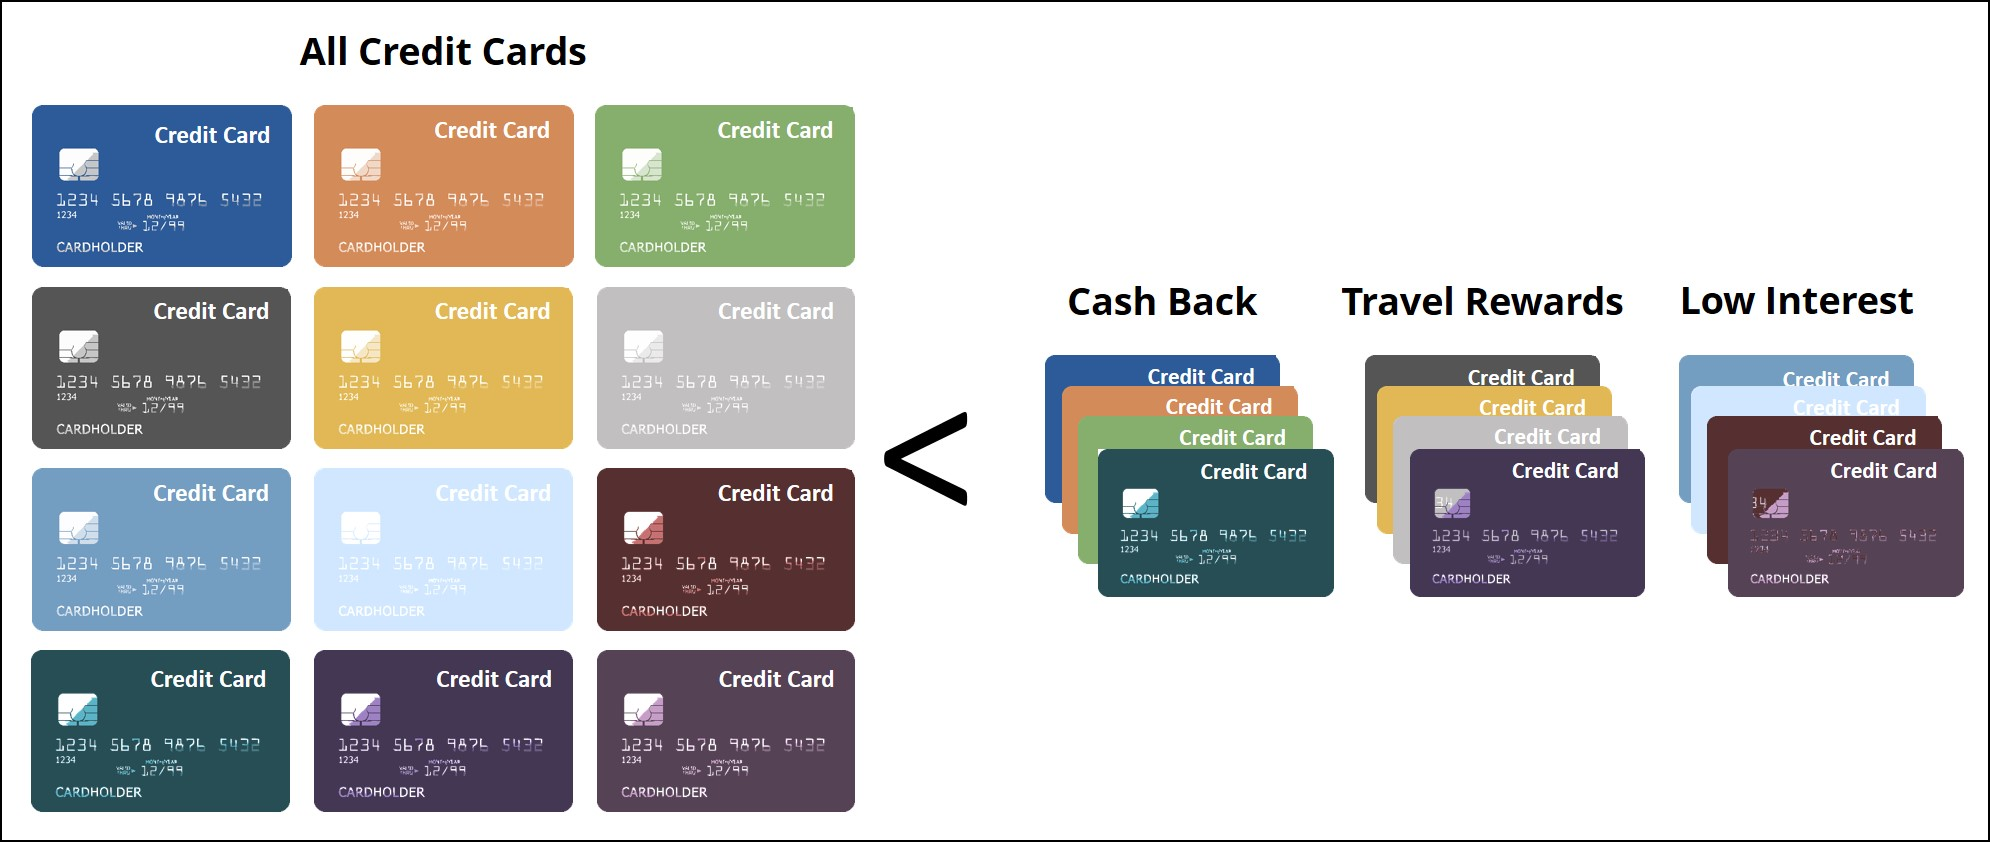 Categorized-Credit-Cards